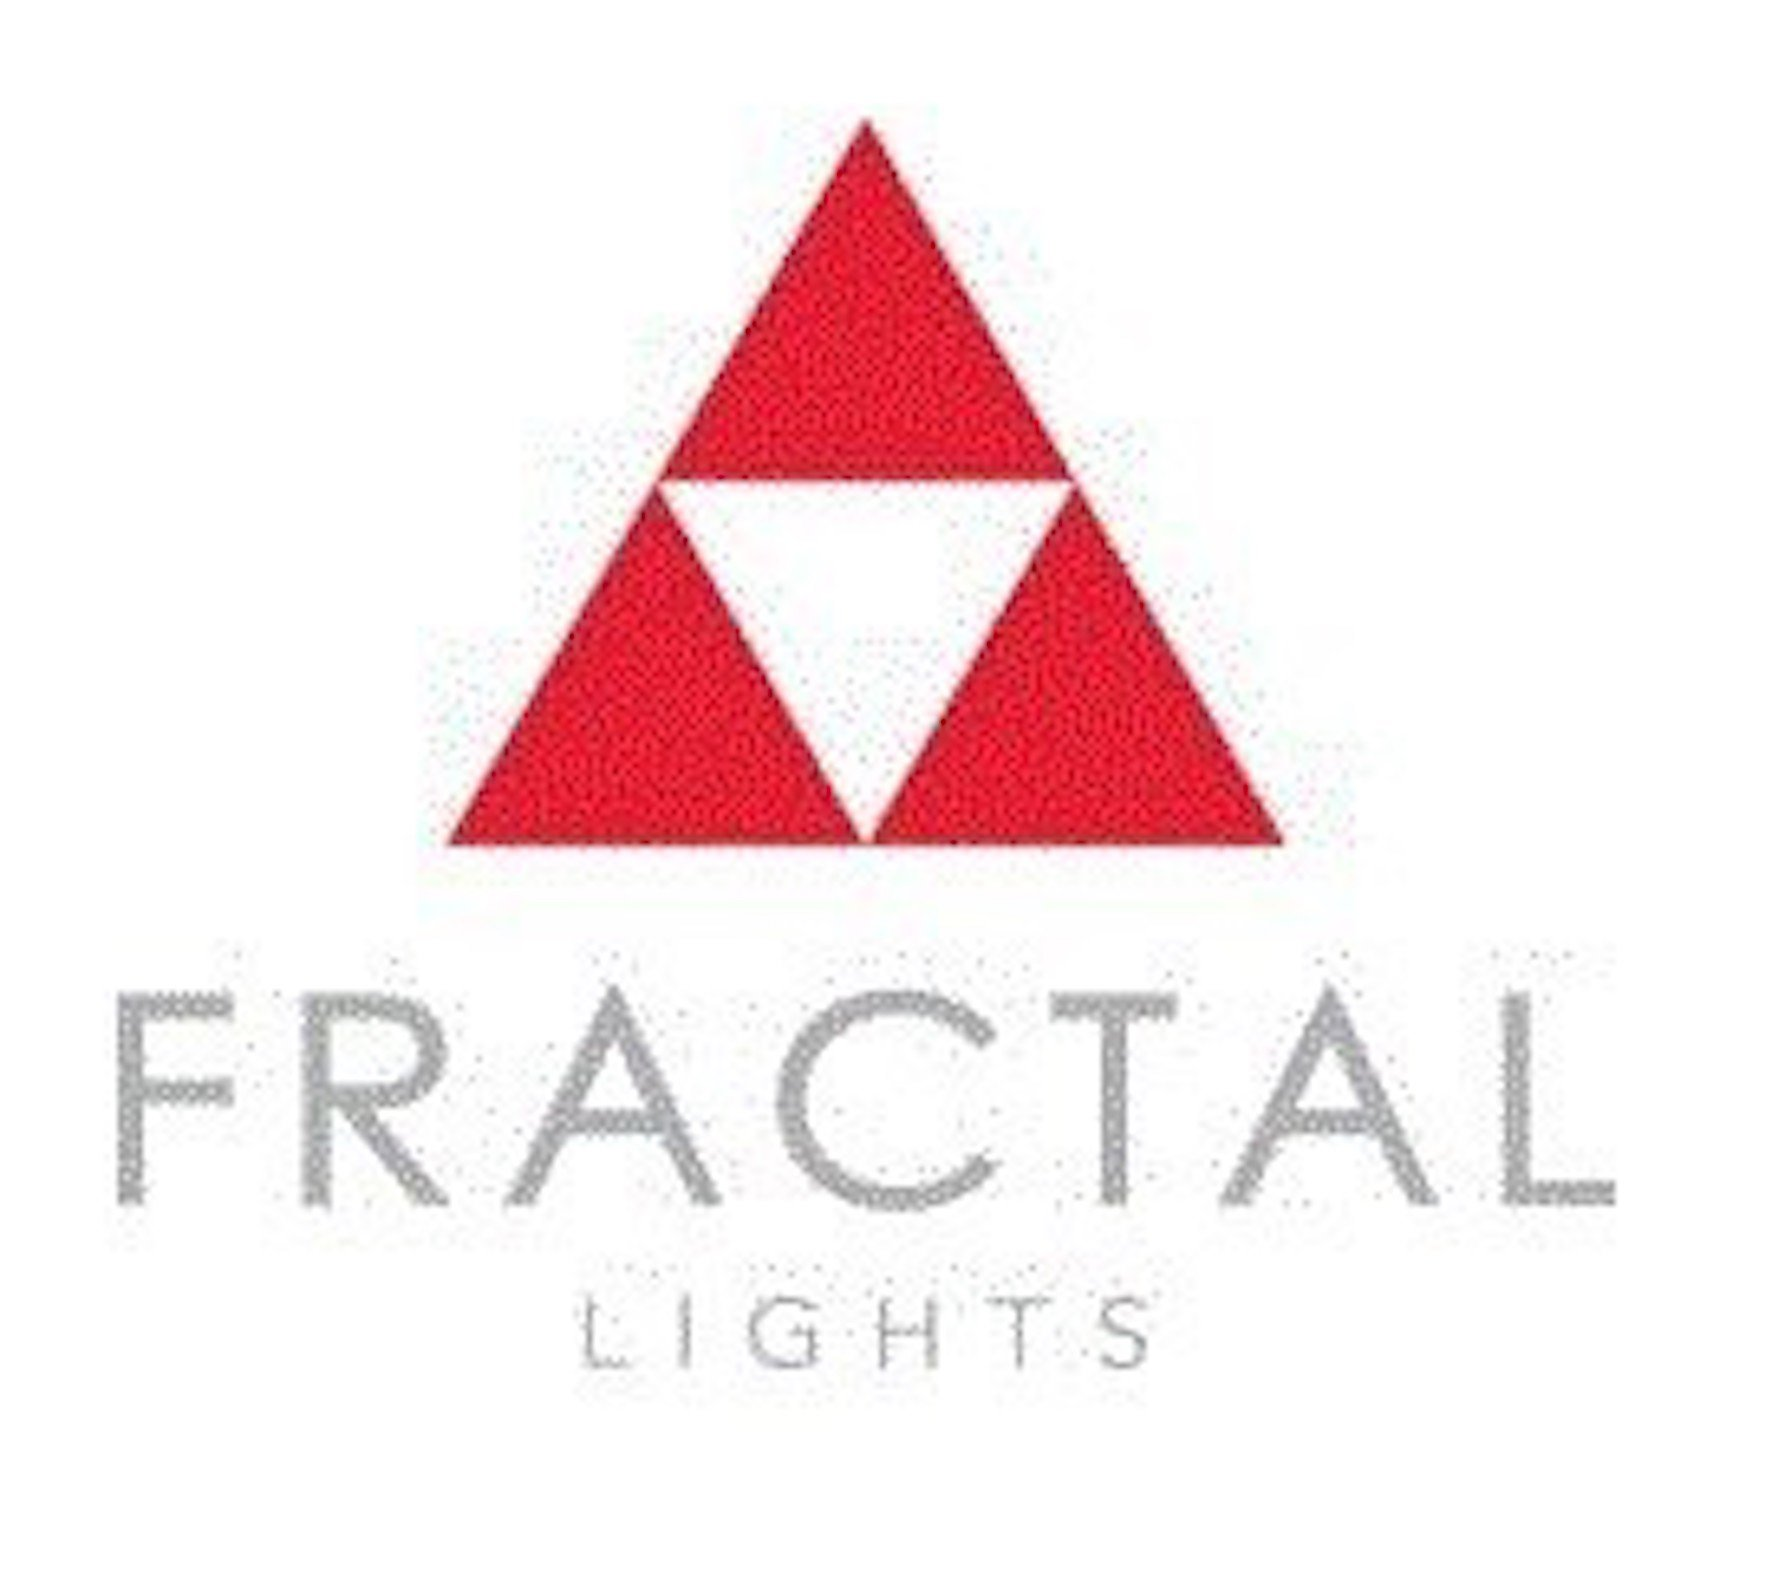 Strona producenta FRACTAL LIGHTS